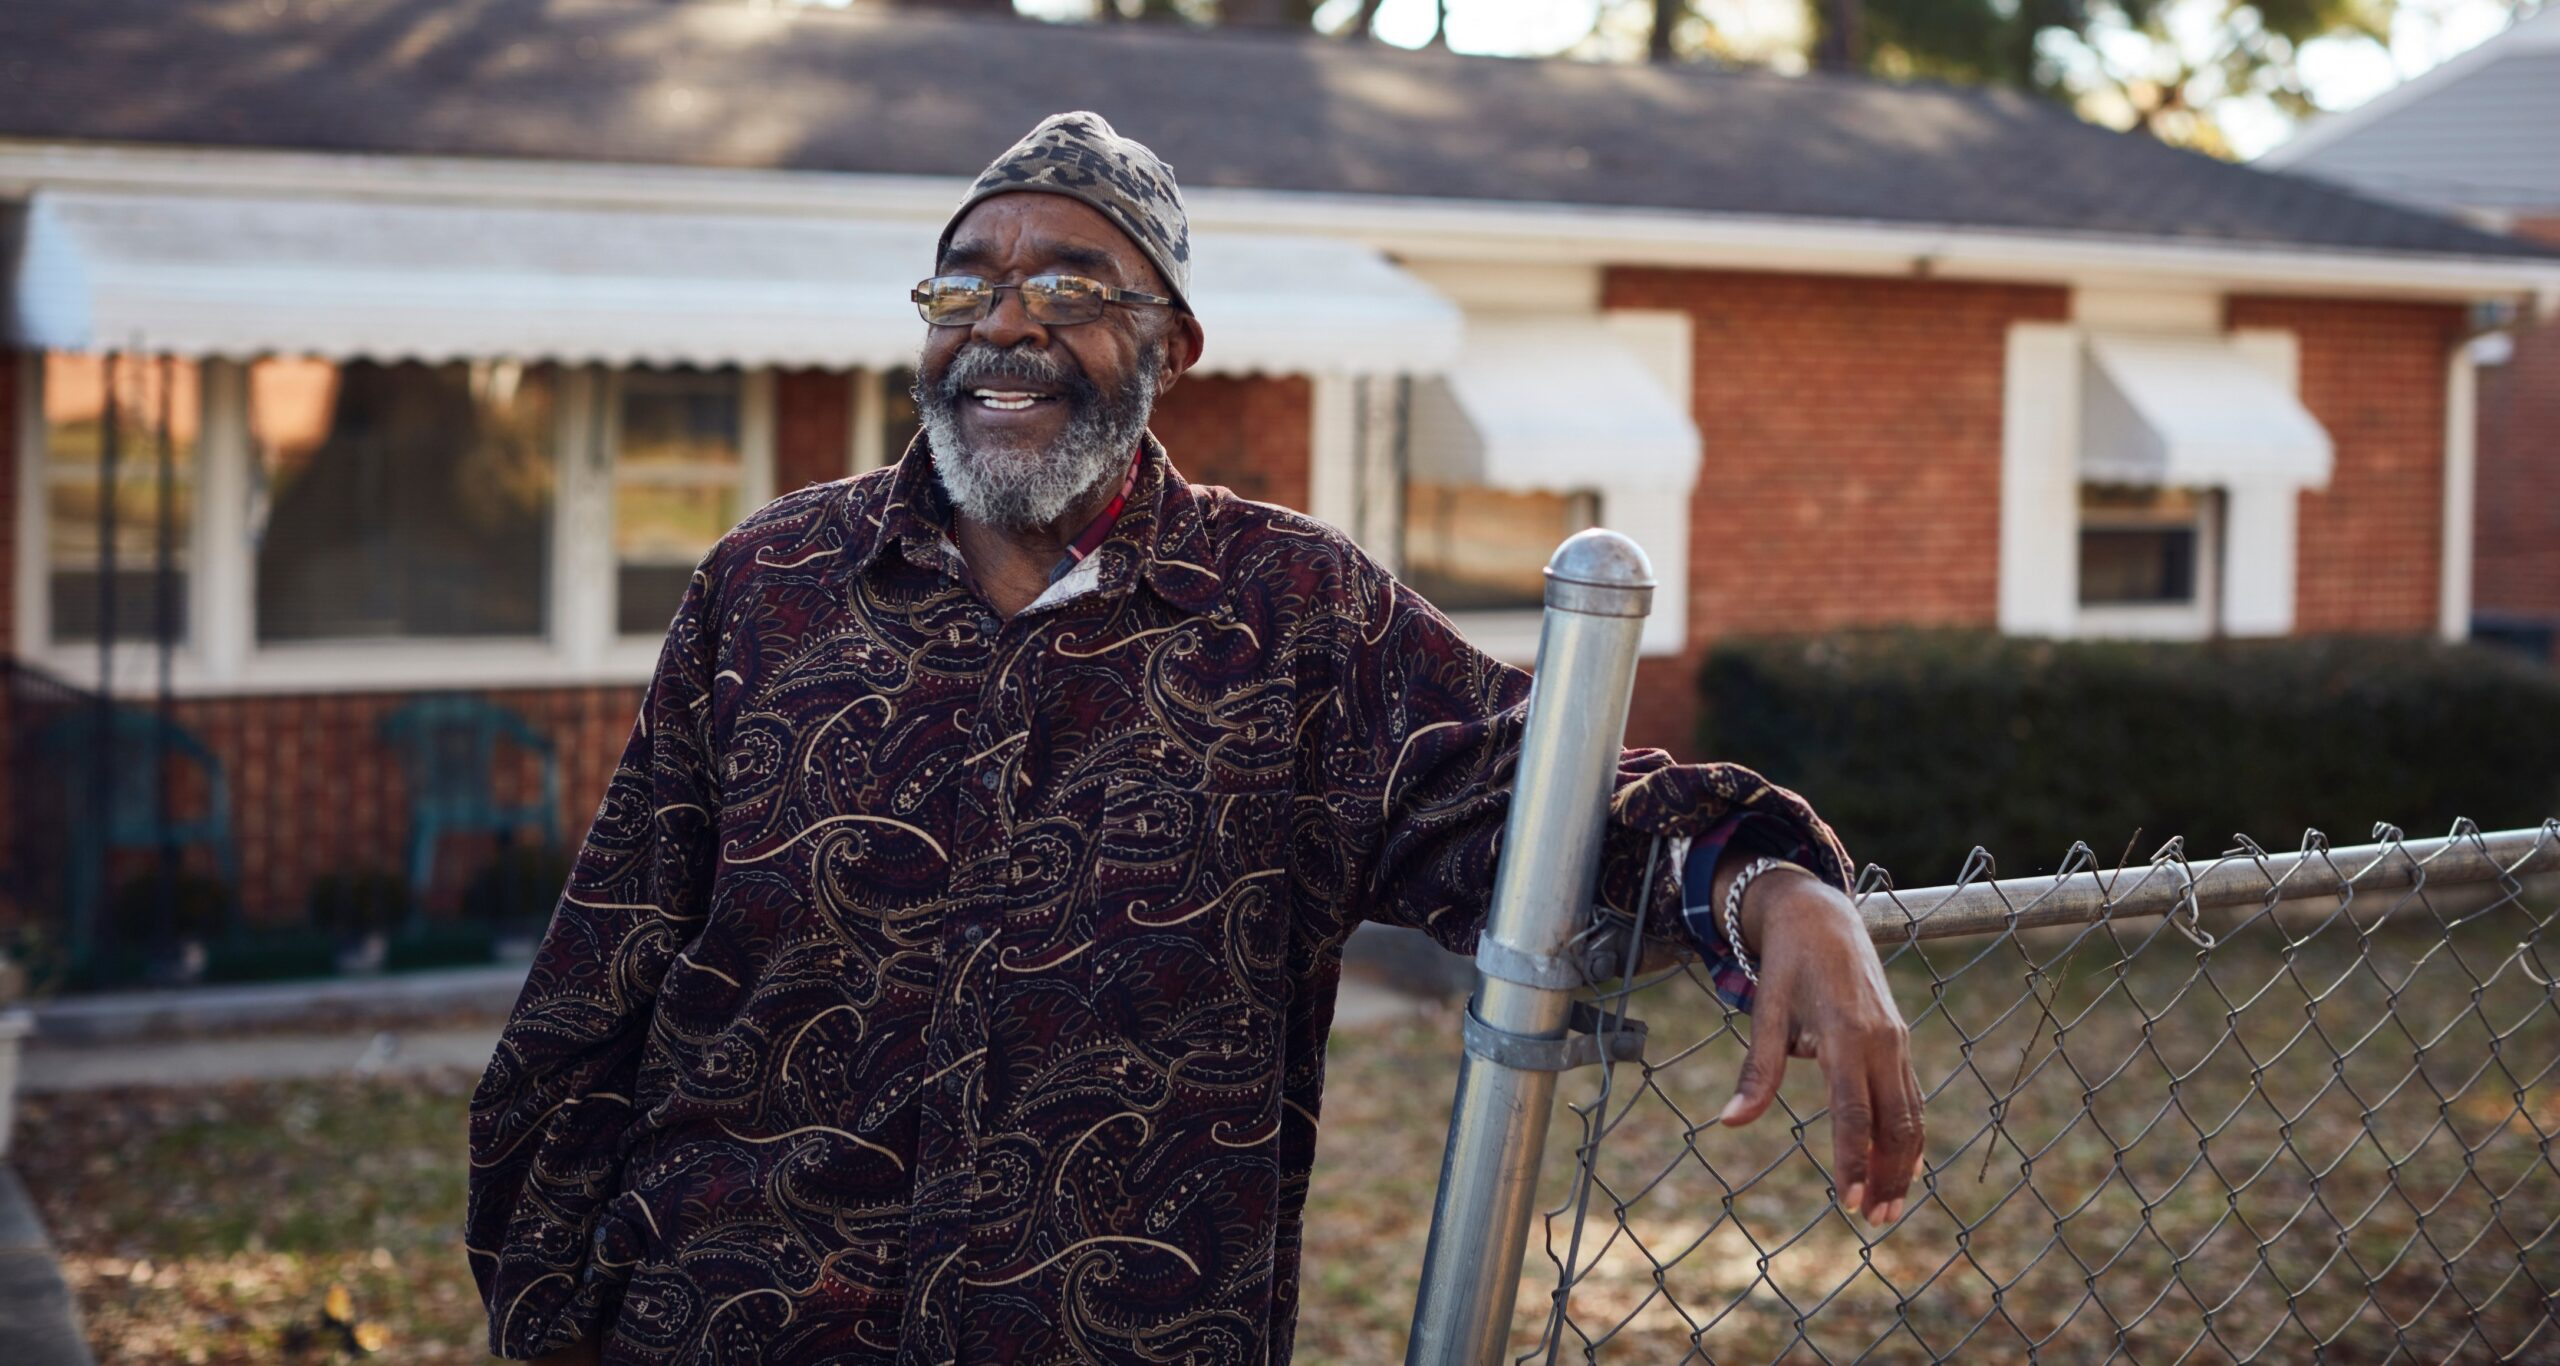 Charles smiles while leaning against the fence in front of his brick home